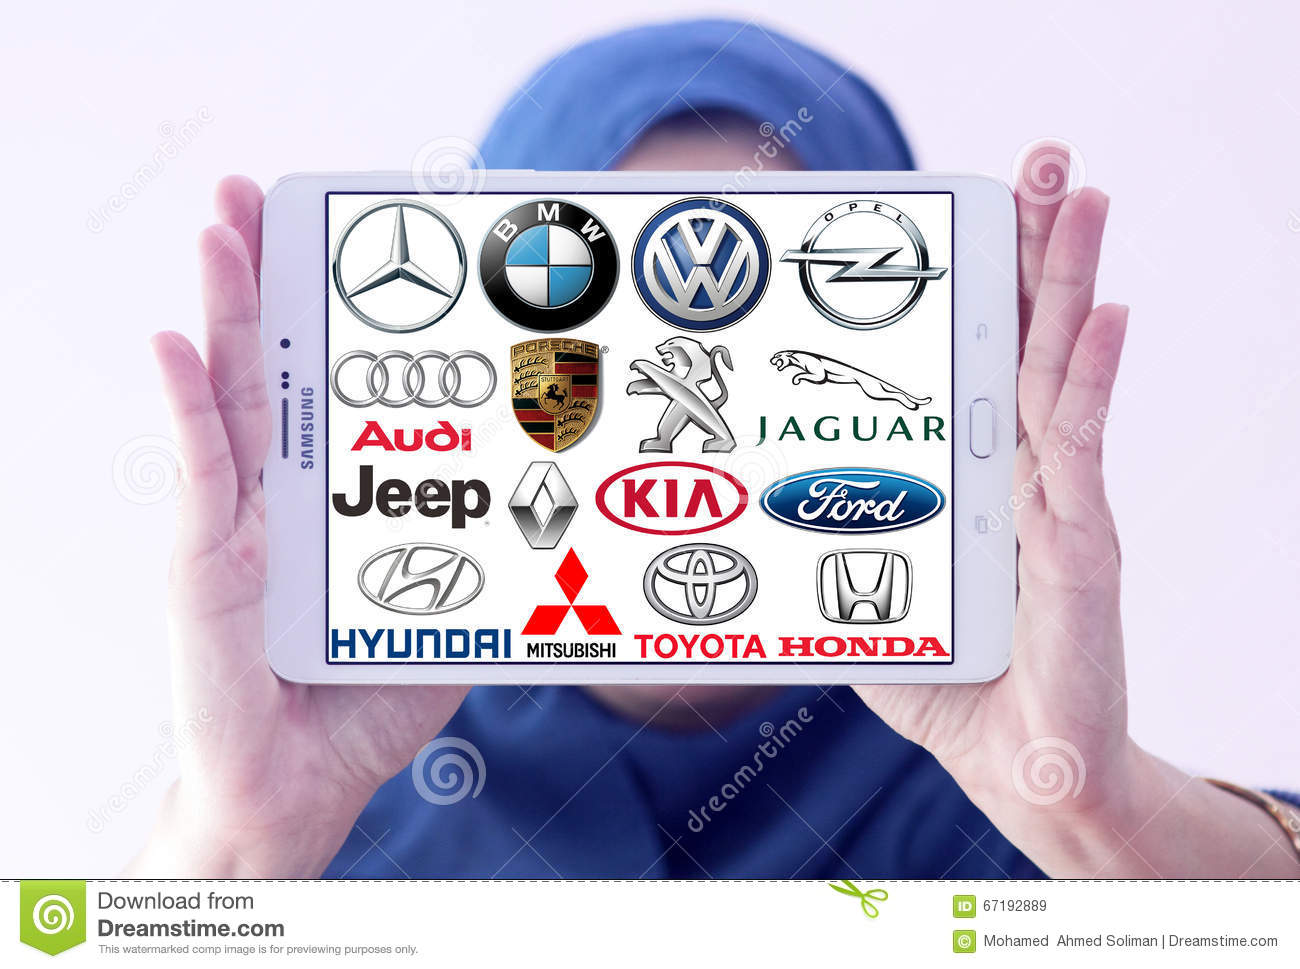 Car Brands And Logos Editorial Stock Image - Image: 67192889